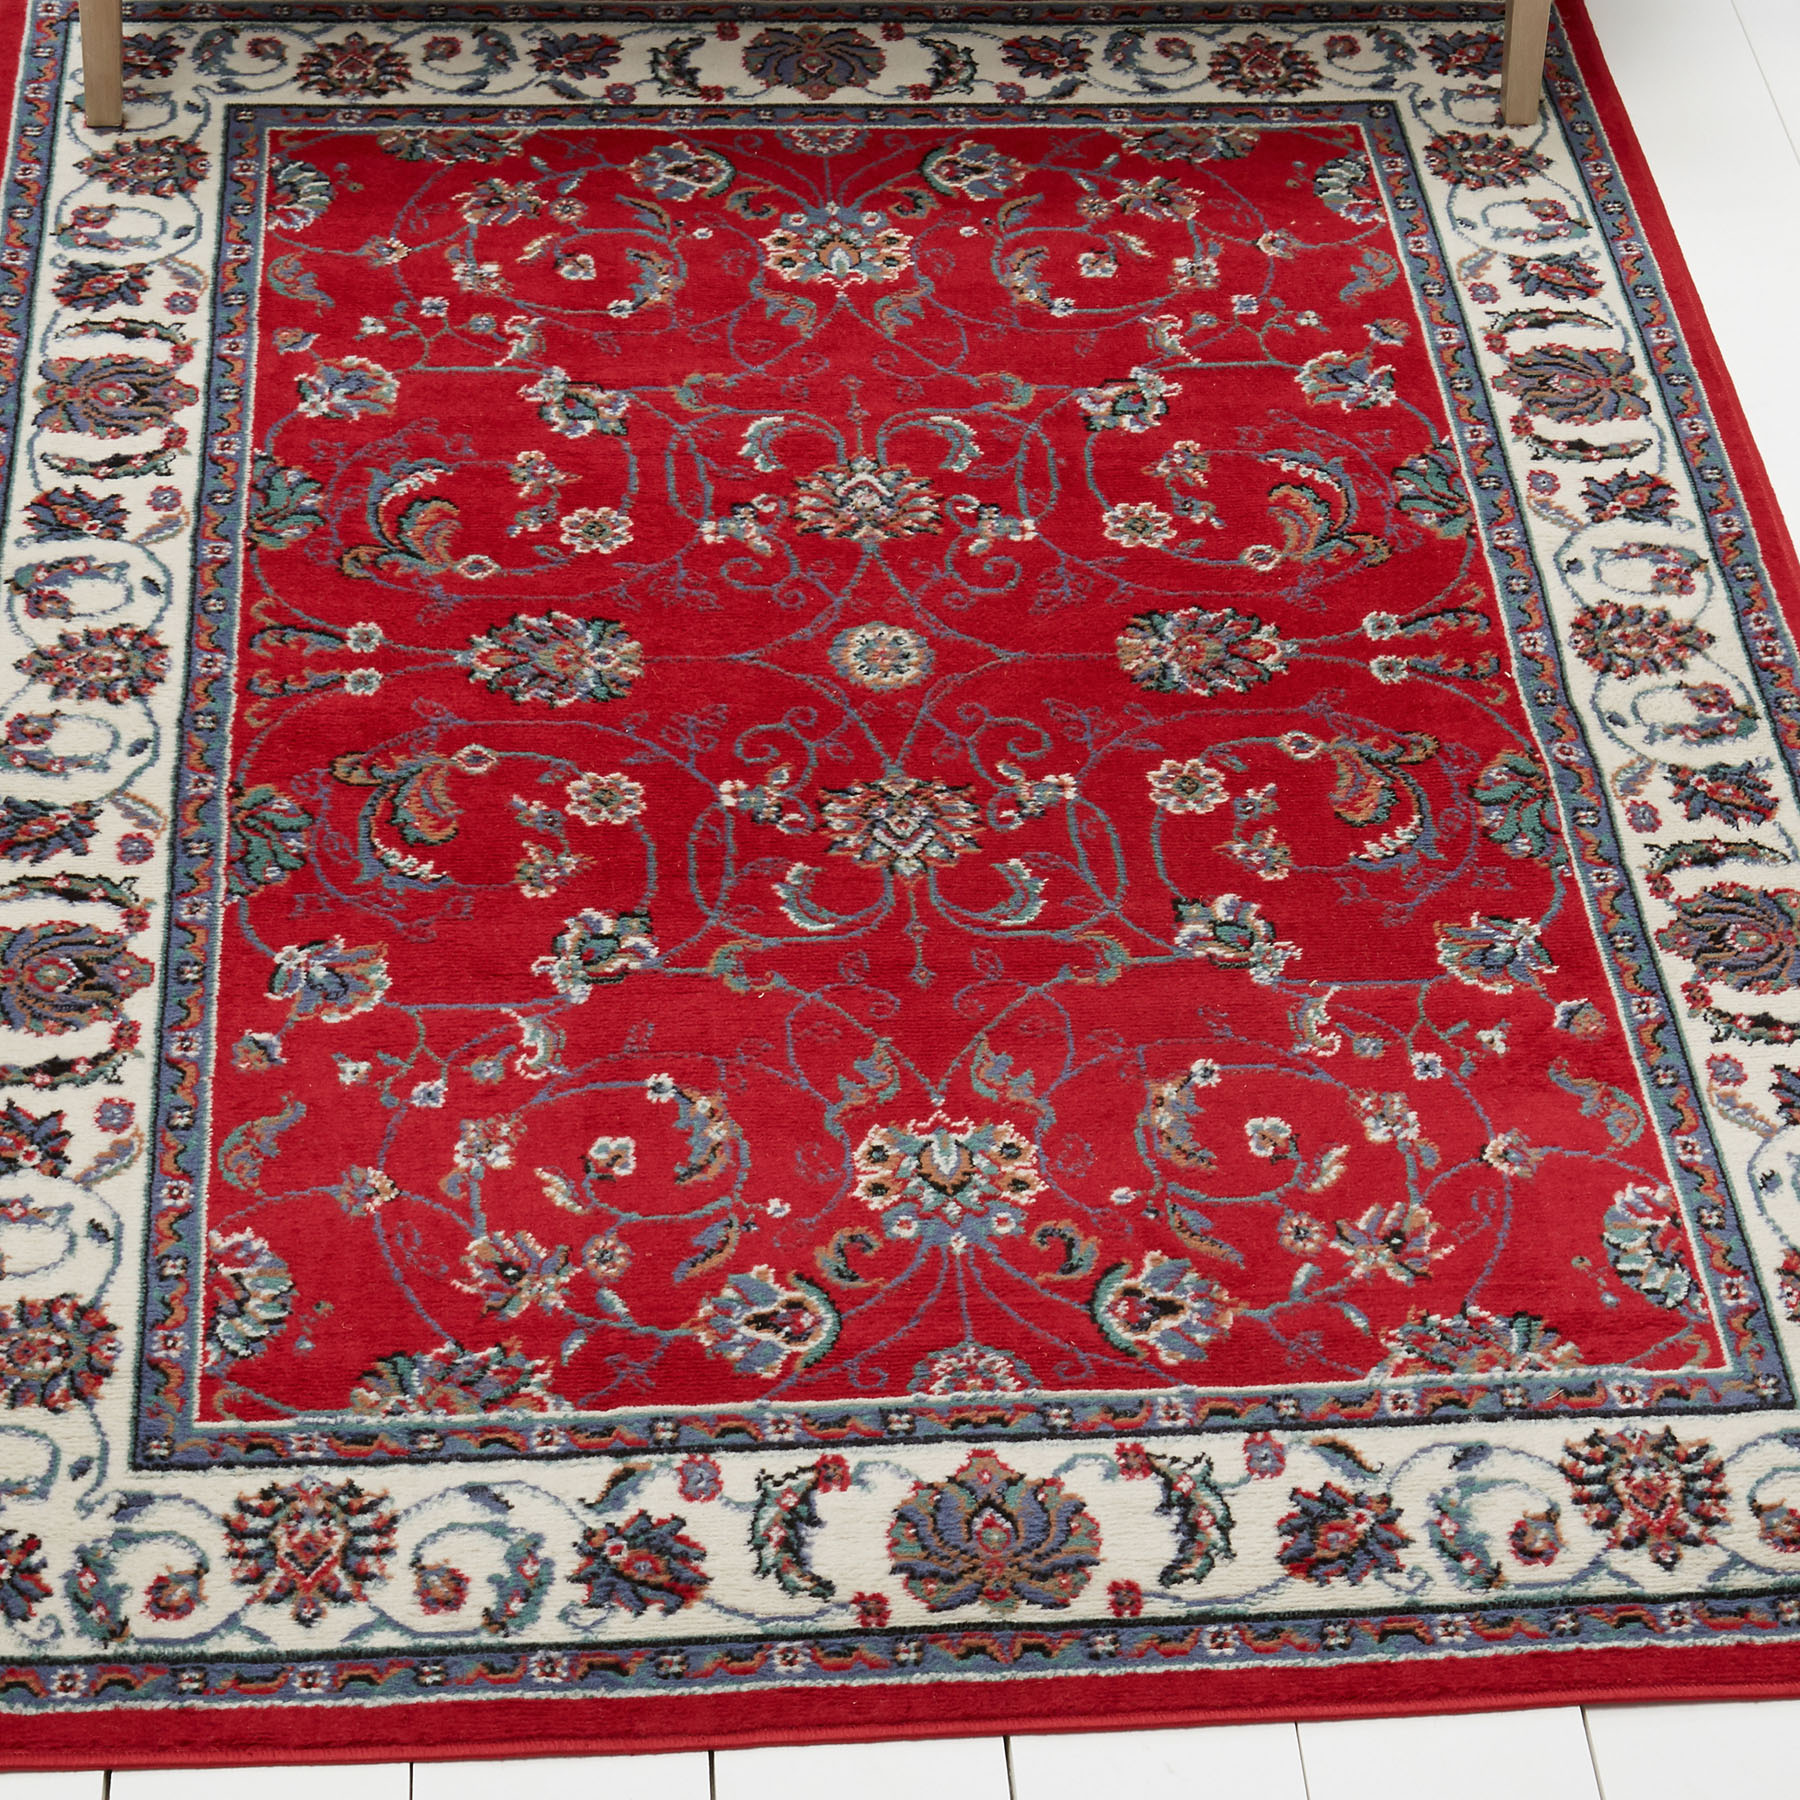 Red Modern Area Rug Bordered Floral Vines Carpet Actual